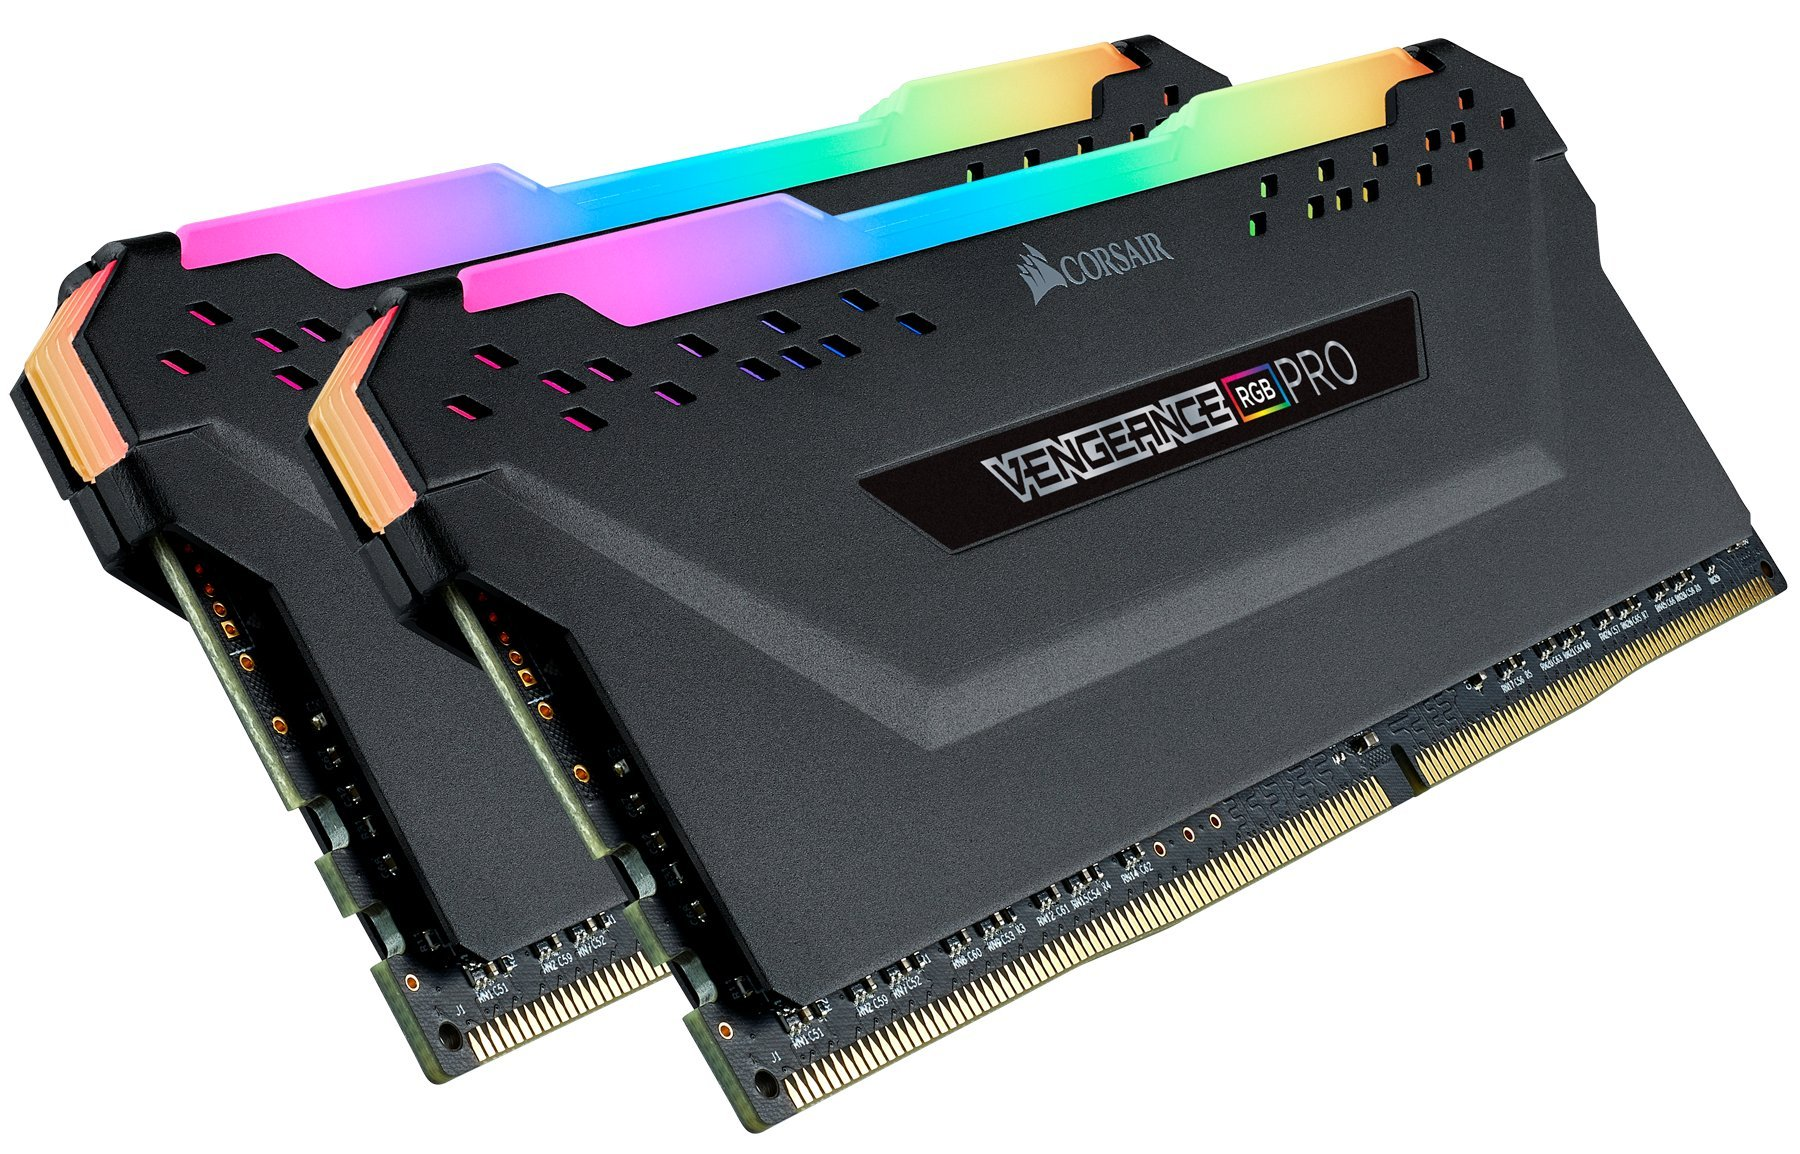 Corsair Vengeance RGB Pro 16GB (2x8GB) DDR4 3600 (PC4-28800) C18 AMD Optimized Memory - Black